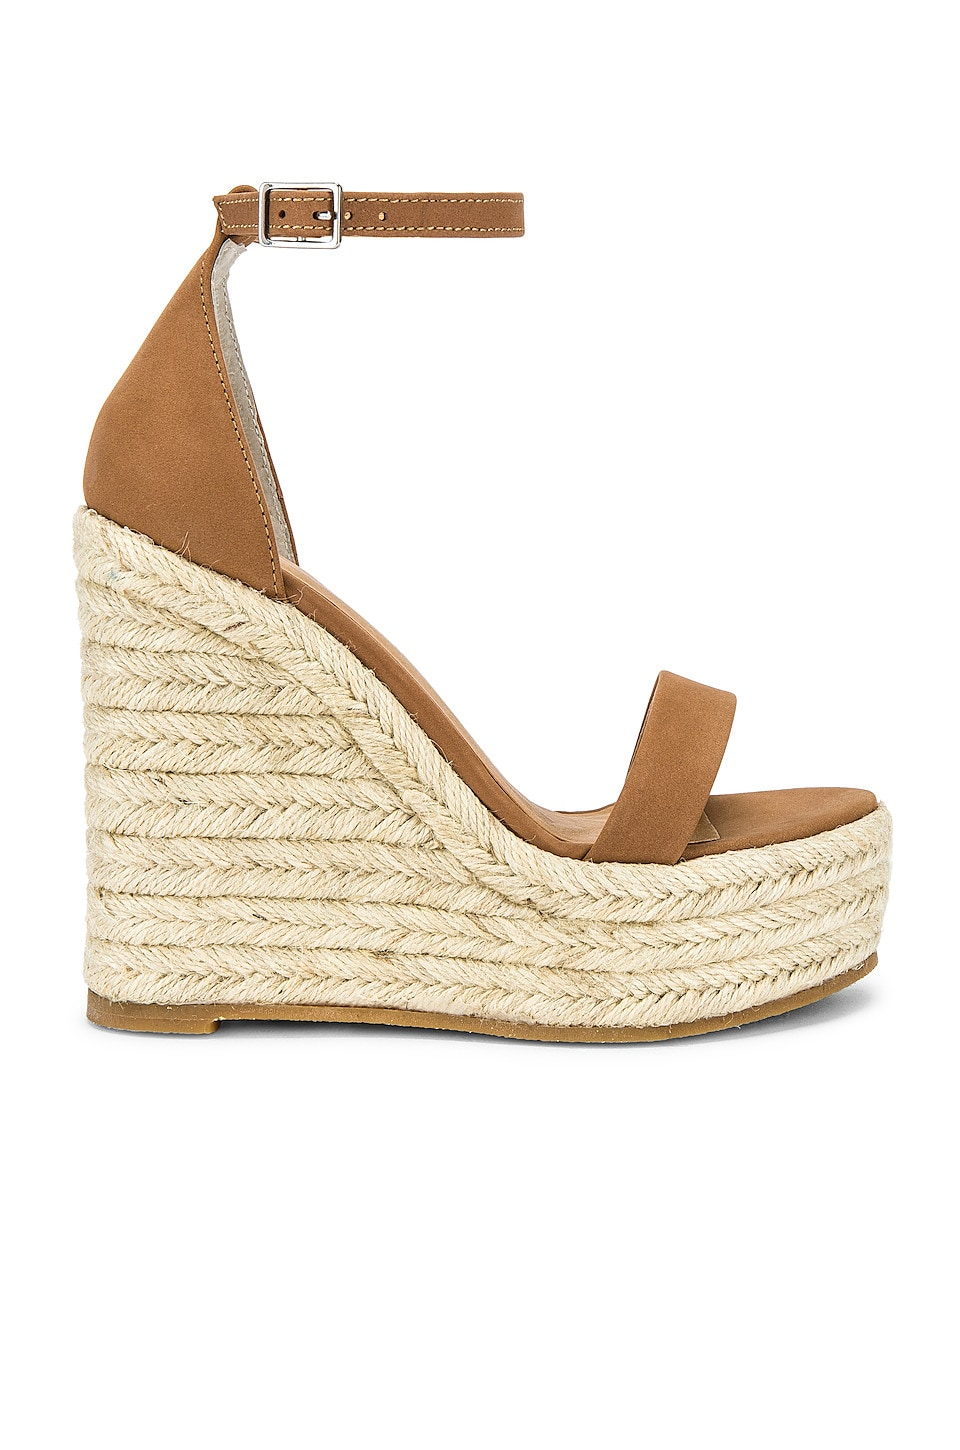 Tony Bianco Boho Wedge in Caramel Phoenix